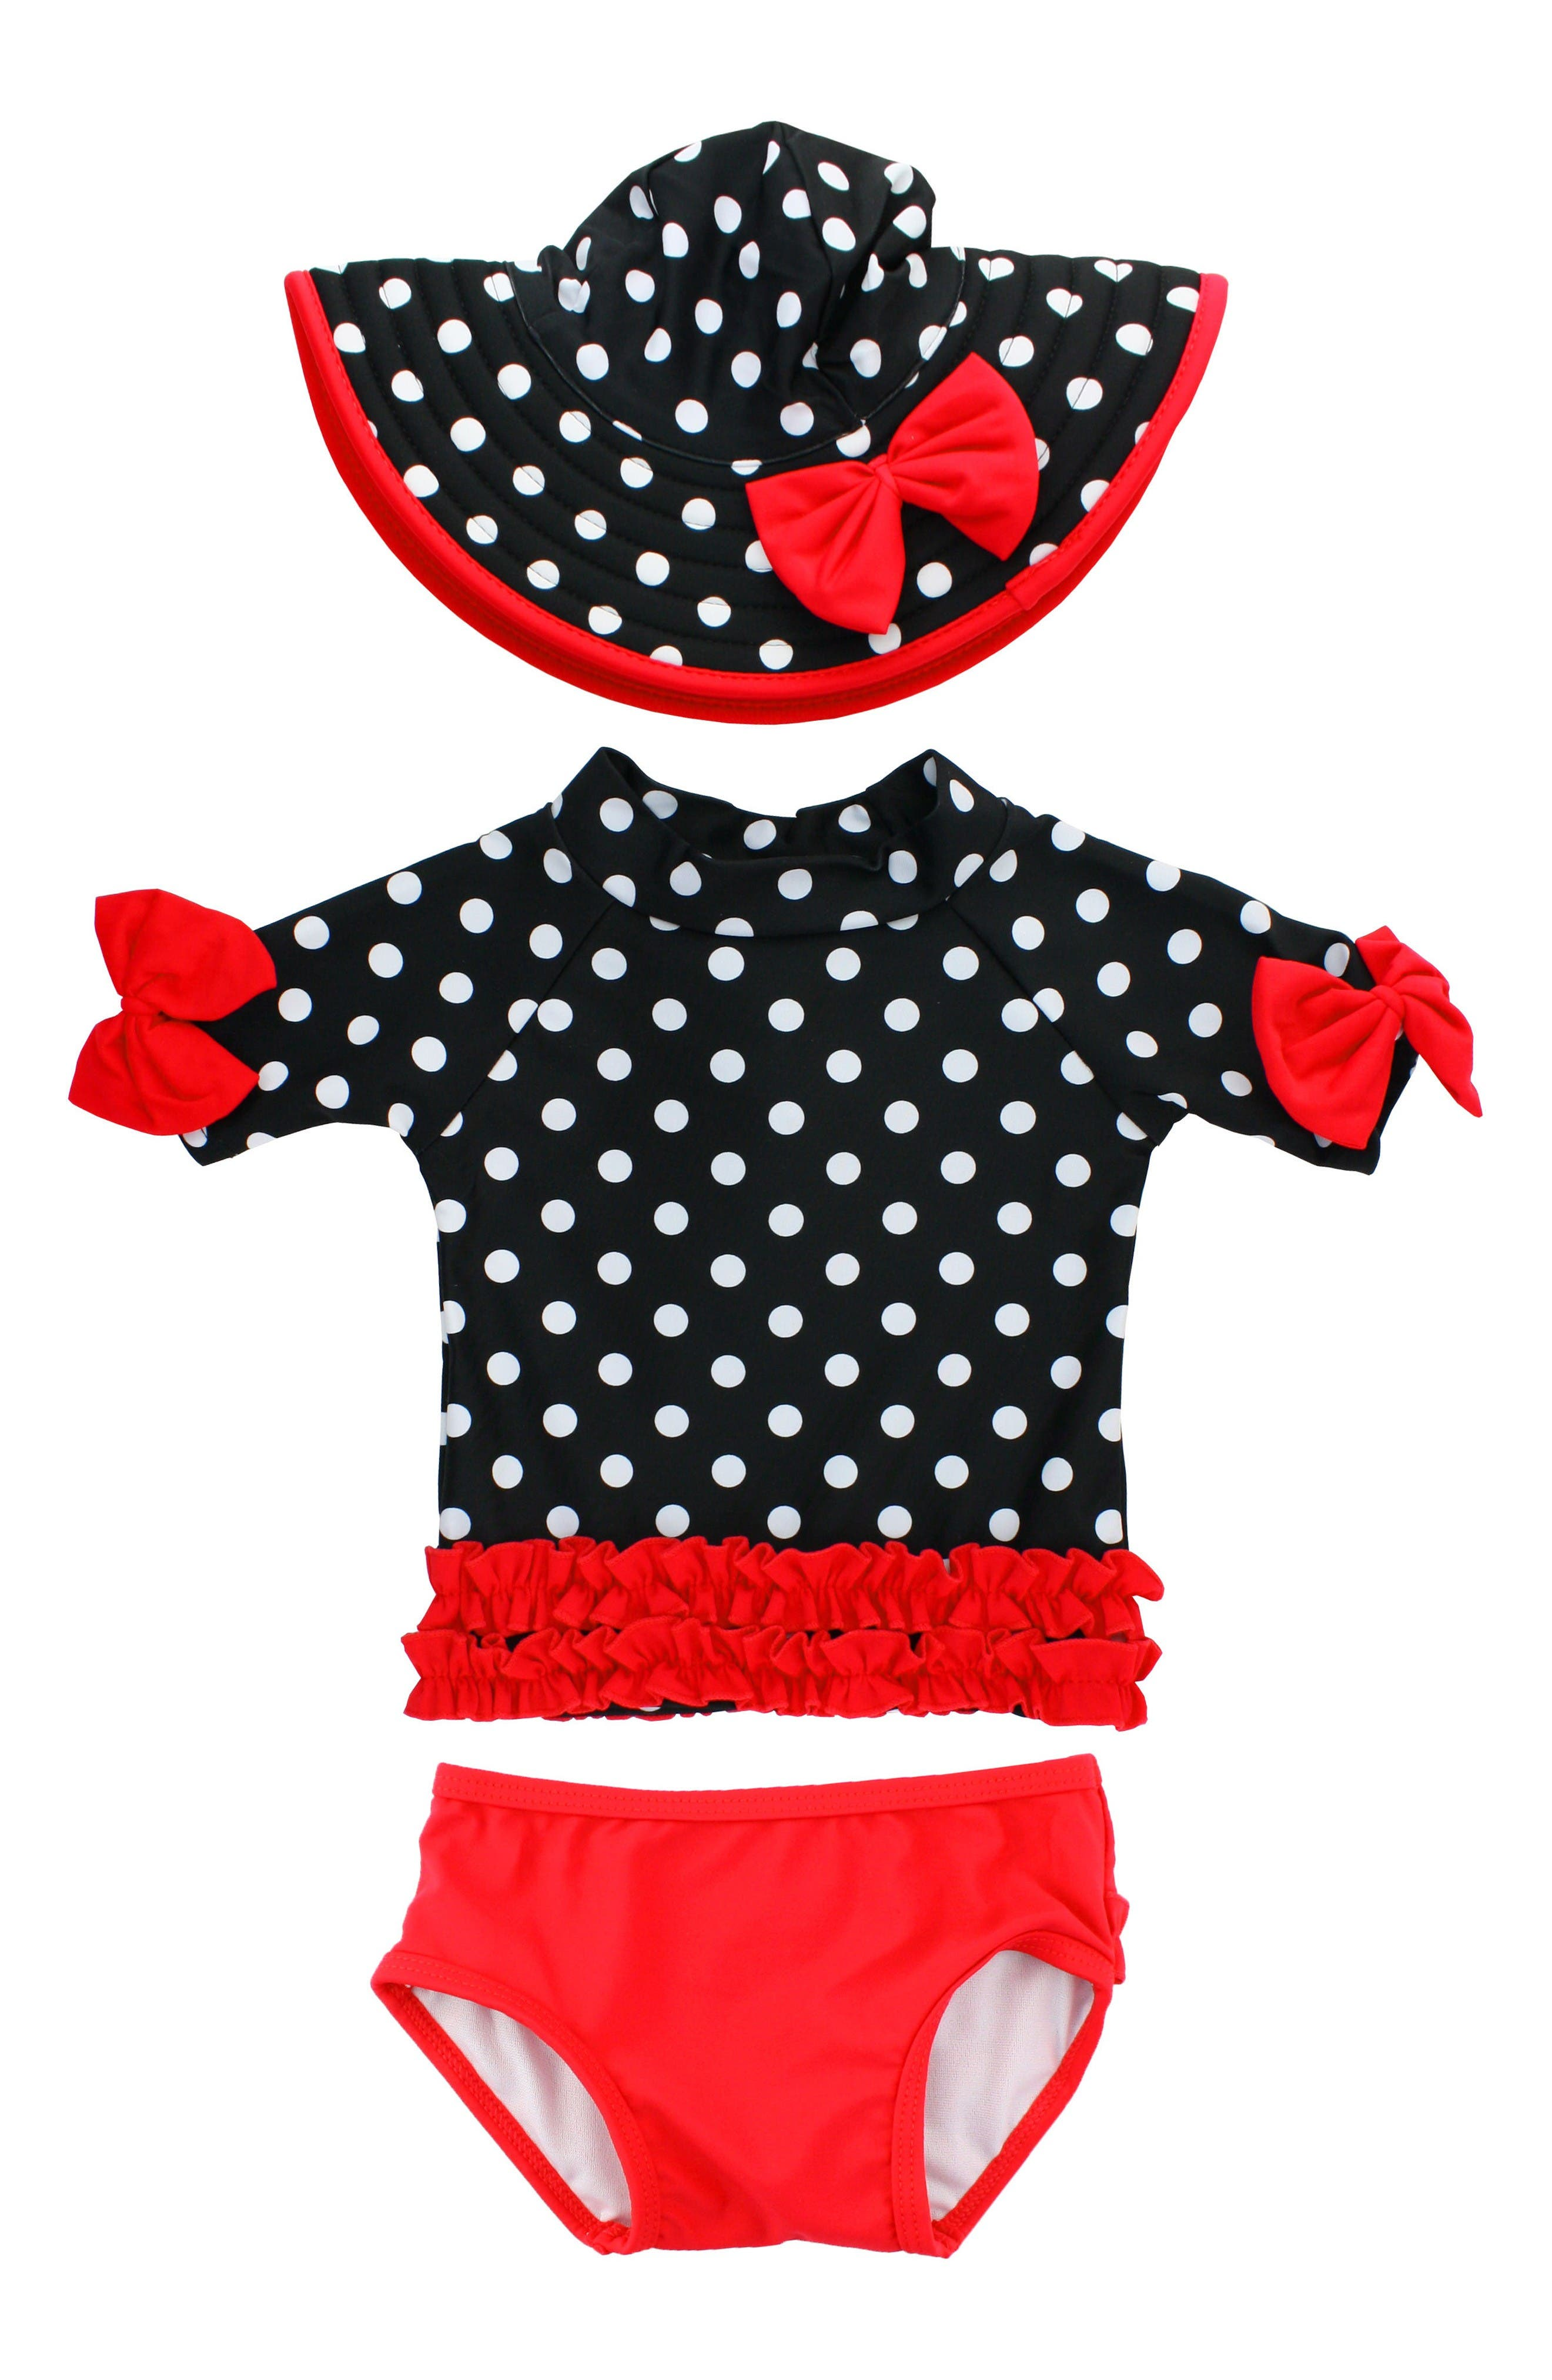 Ruffle Butts Vintage Two-Piece Rashguard Swimsuit & Hat Set (Baby Girls)